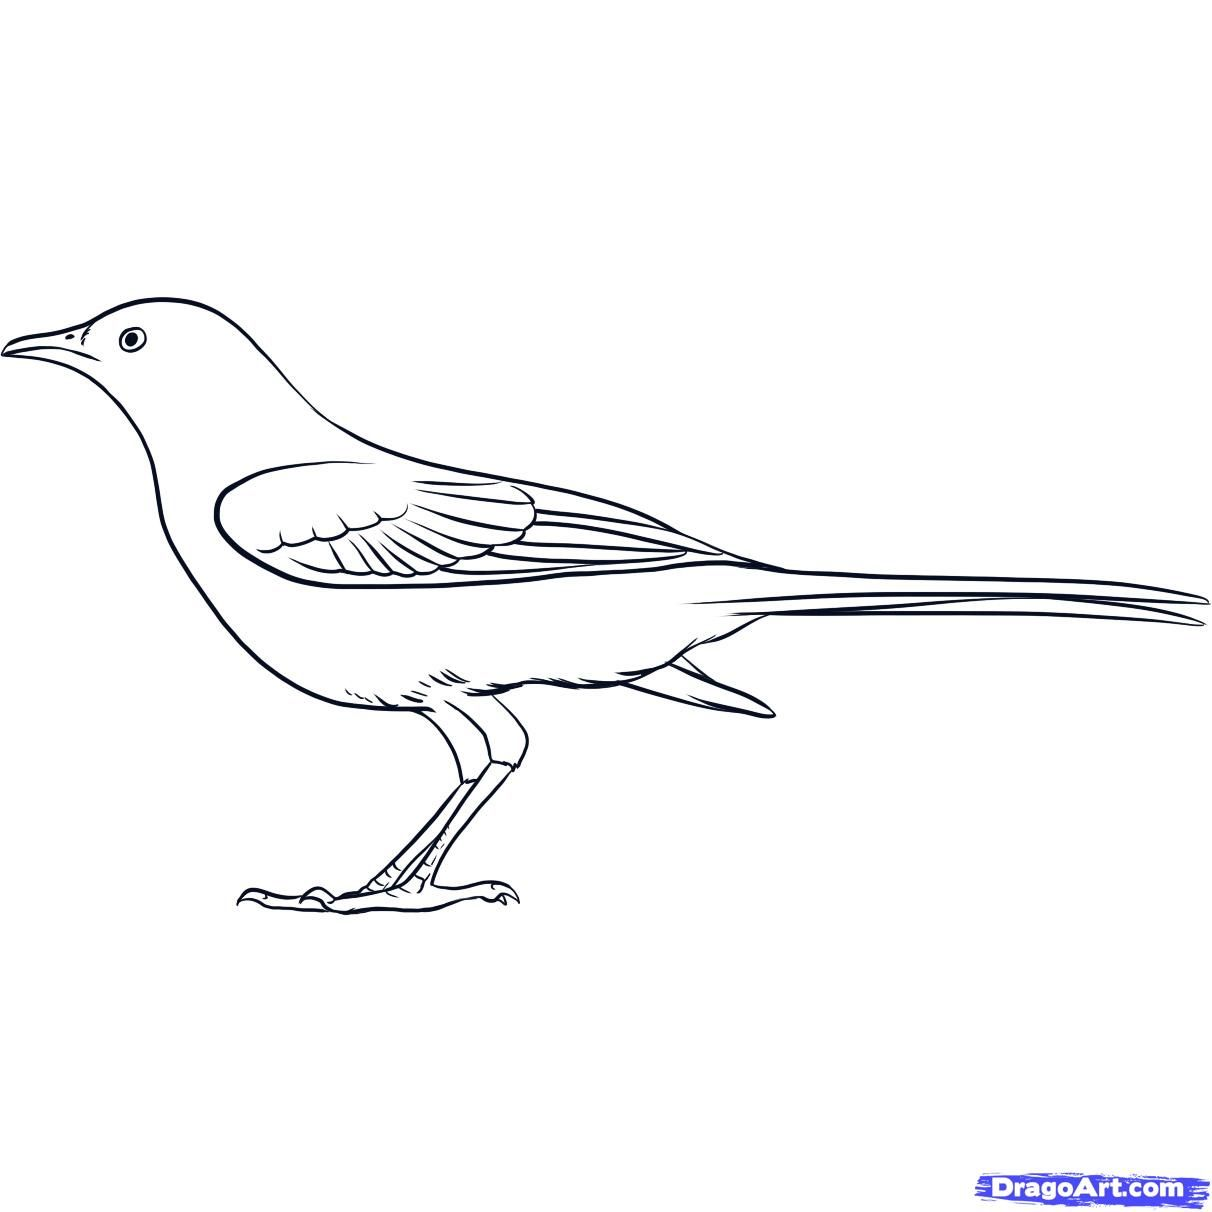 How To Draw A Mockingbird By Dawn Drawings Animal Drawings